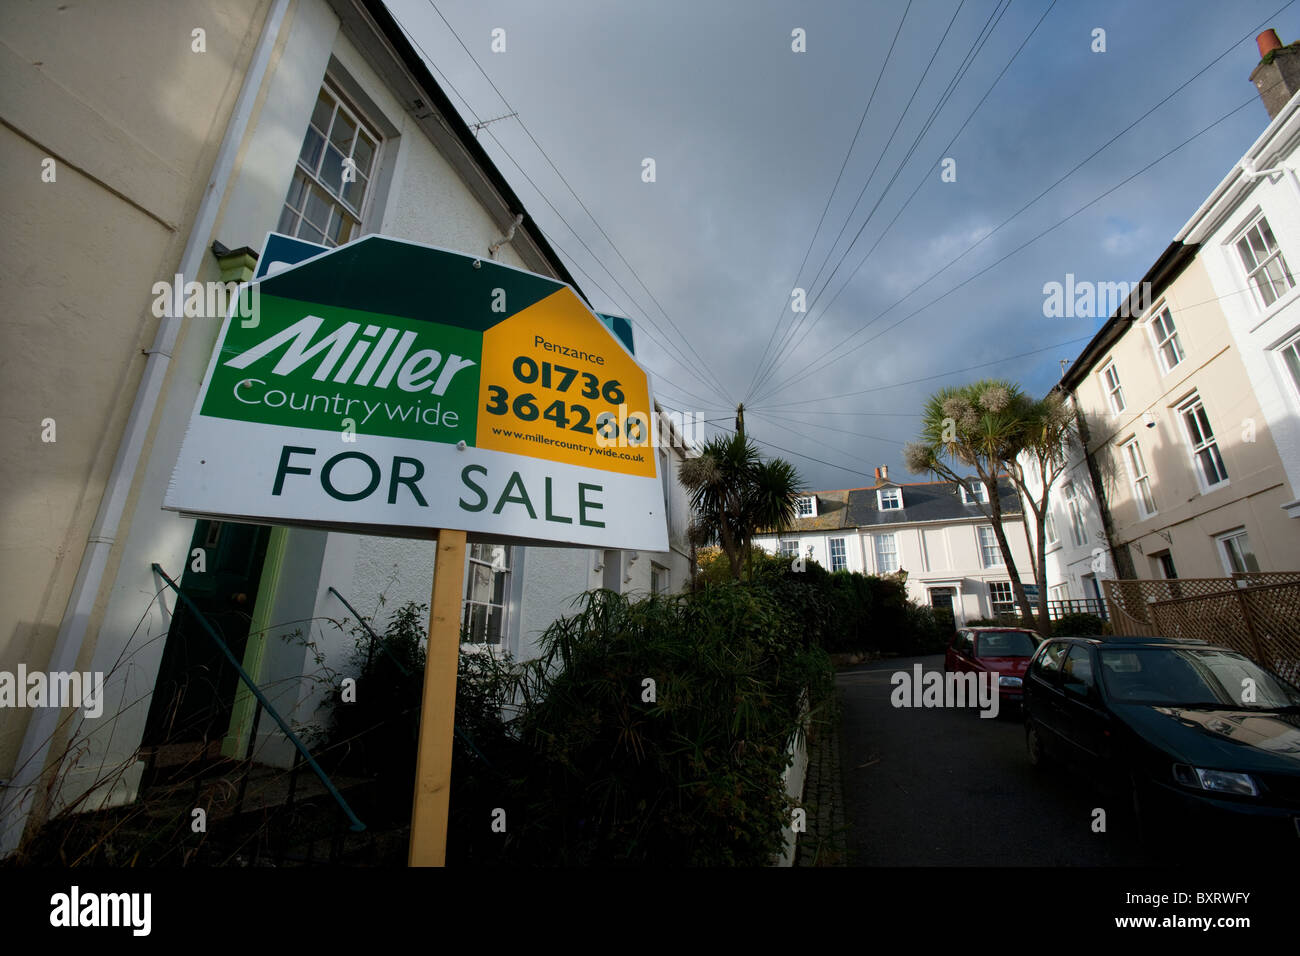 House for sale in Penzance, Cornwall - Stock Image